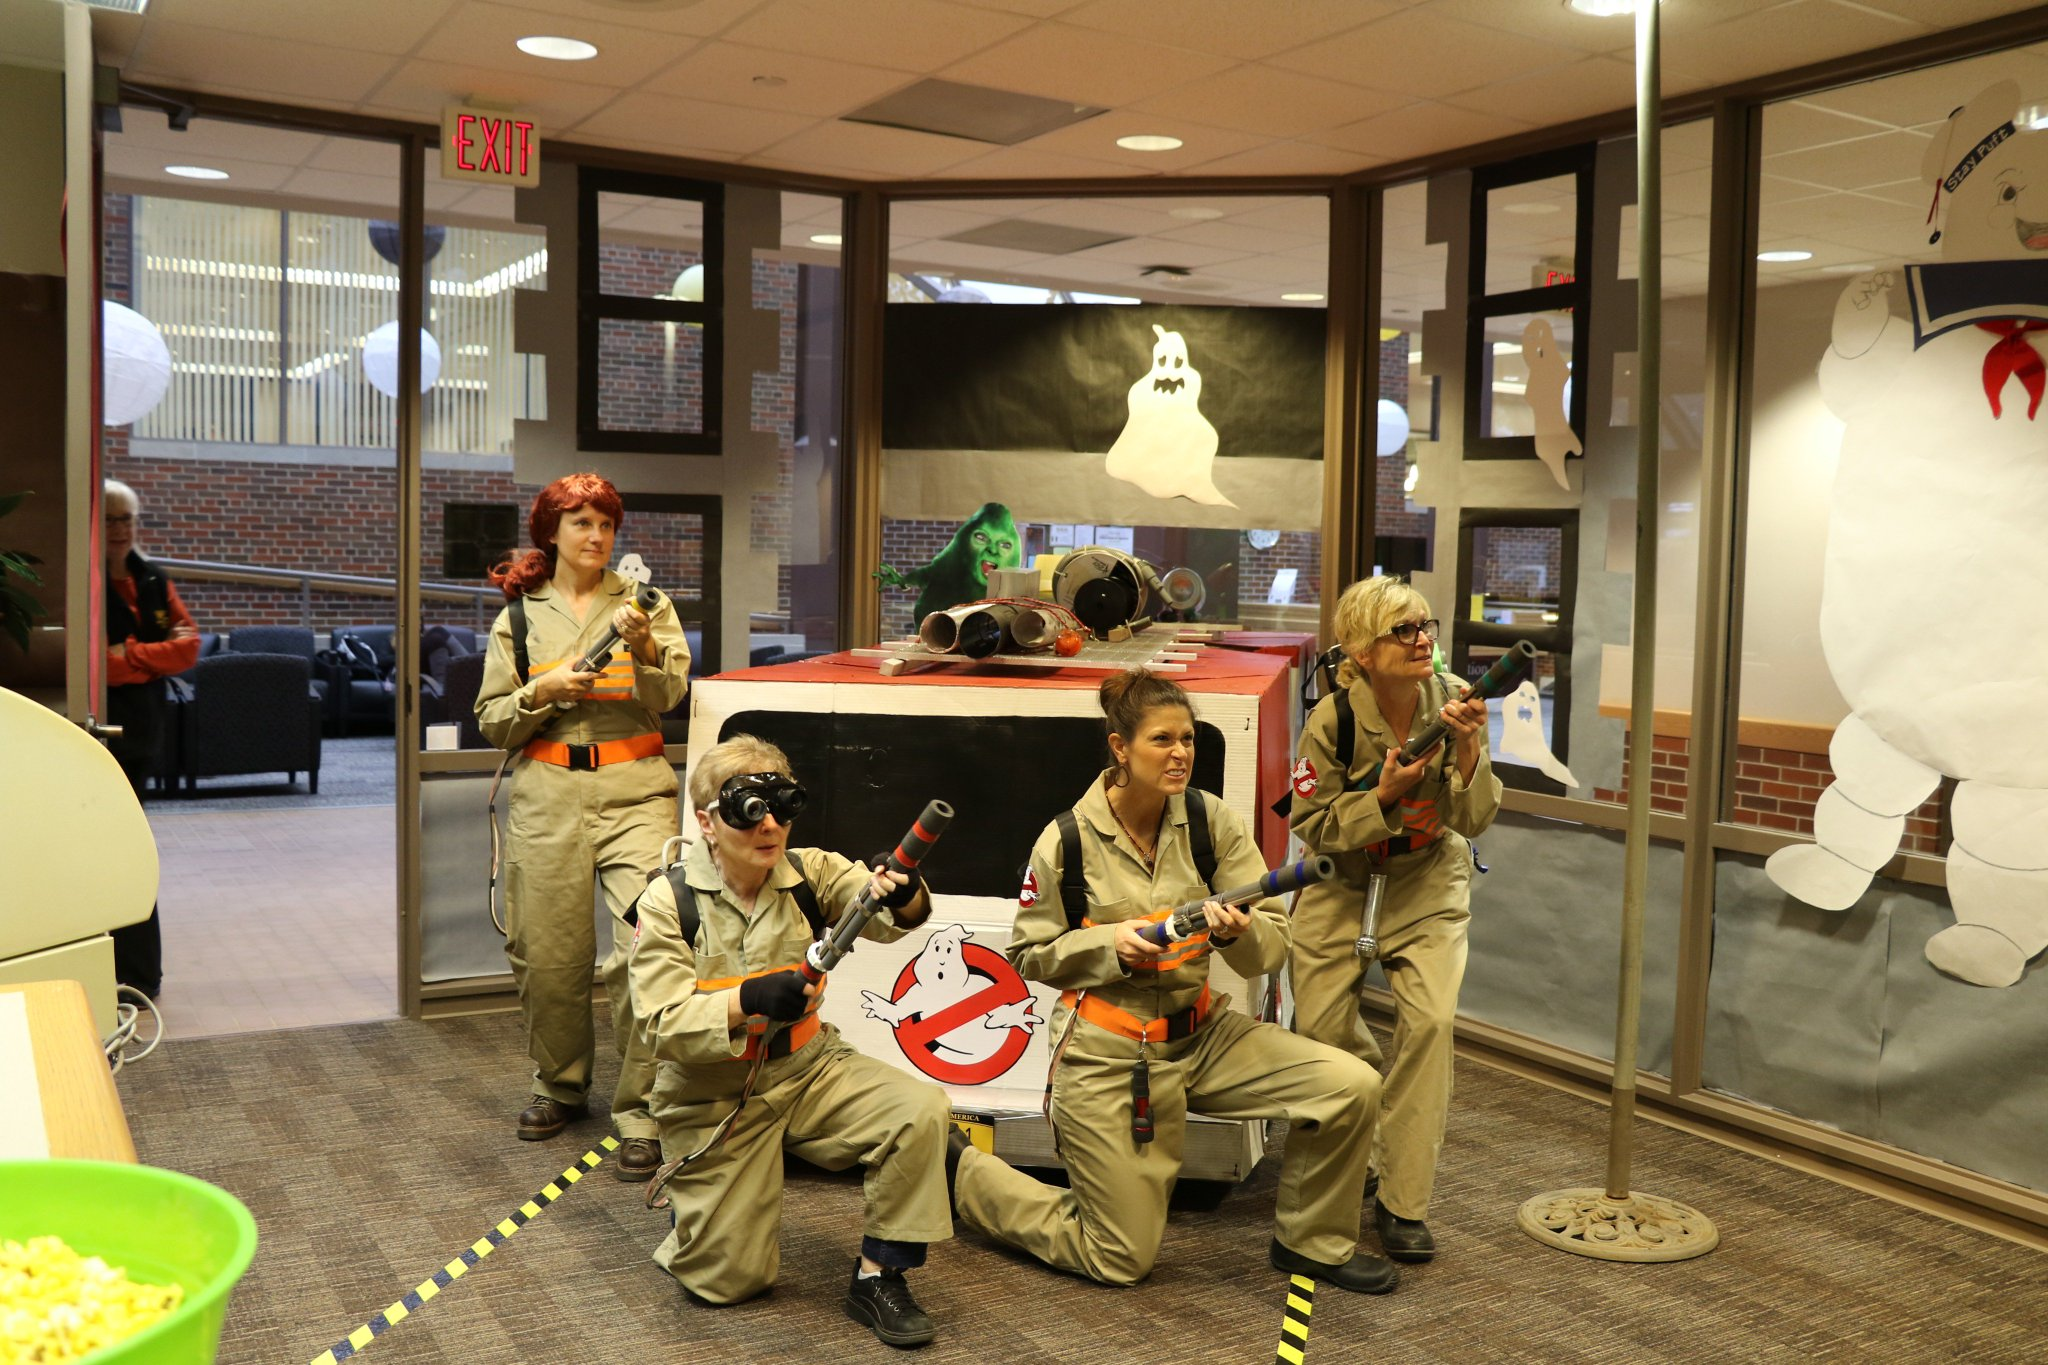 Wayne State's Career Services staff...winning Halloween since, like, forever. https://t.co/dvsGYdvQwl